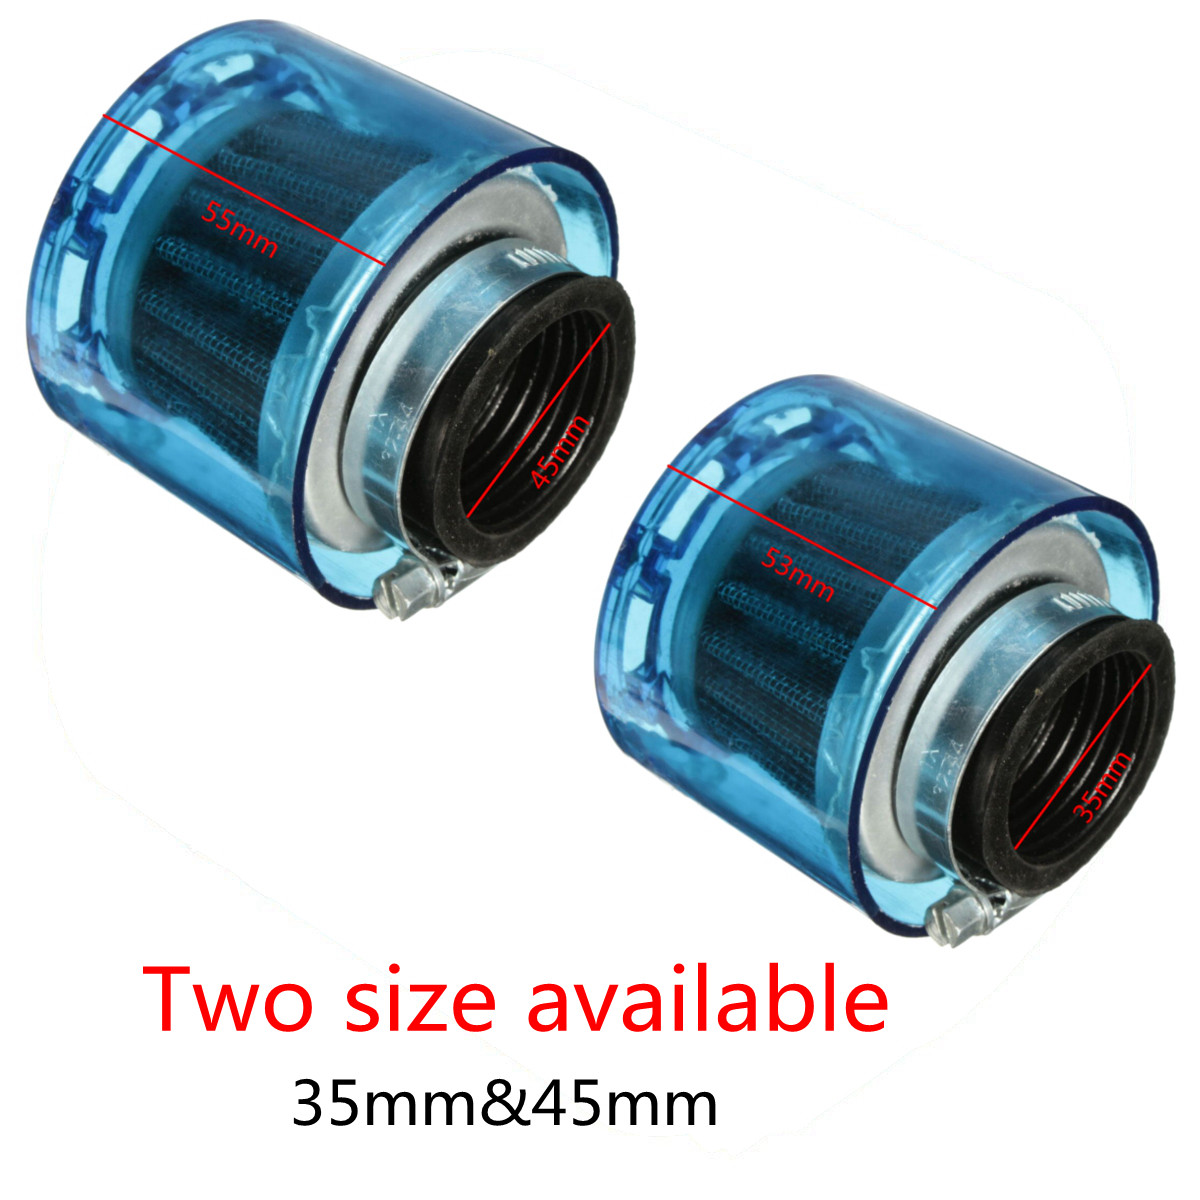 Universal Blue 35mm 45mm Motorcycle Motorbike Air Filter Cleaner 50cc 110cc 125cc ATV PIT Dirt Bike Splash Proof image